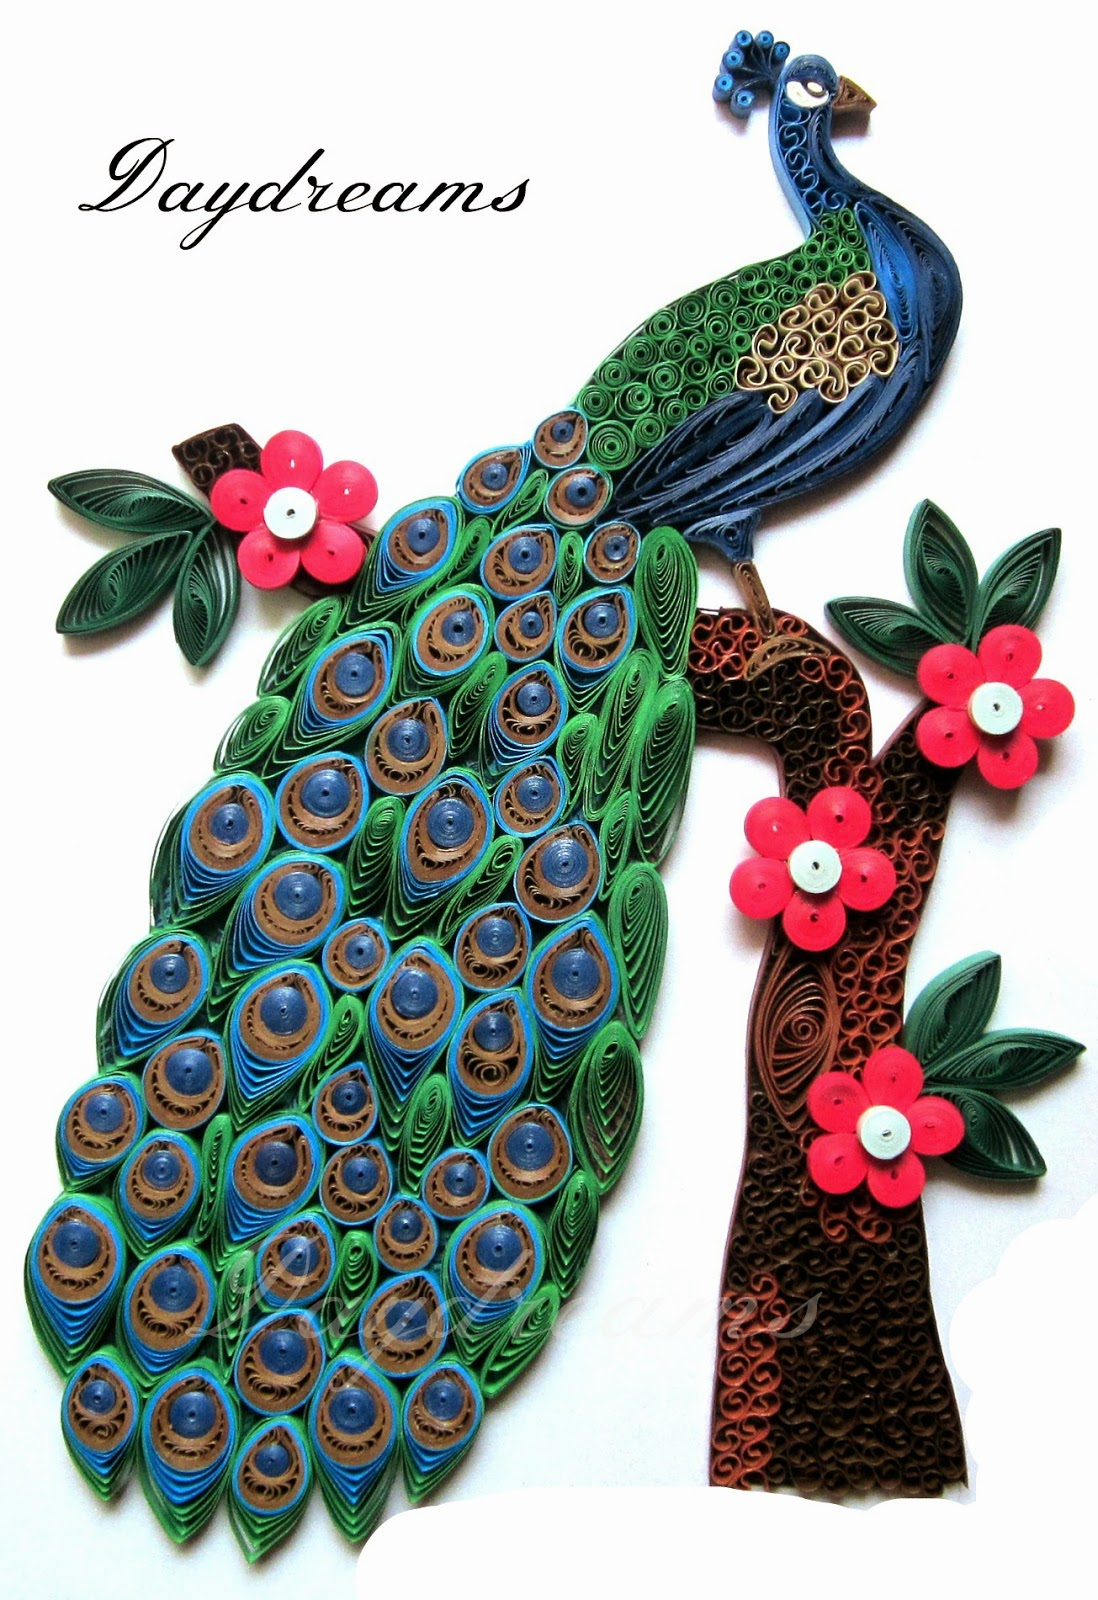 Daydreams for Big quilling designs